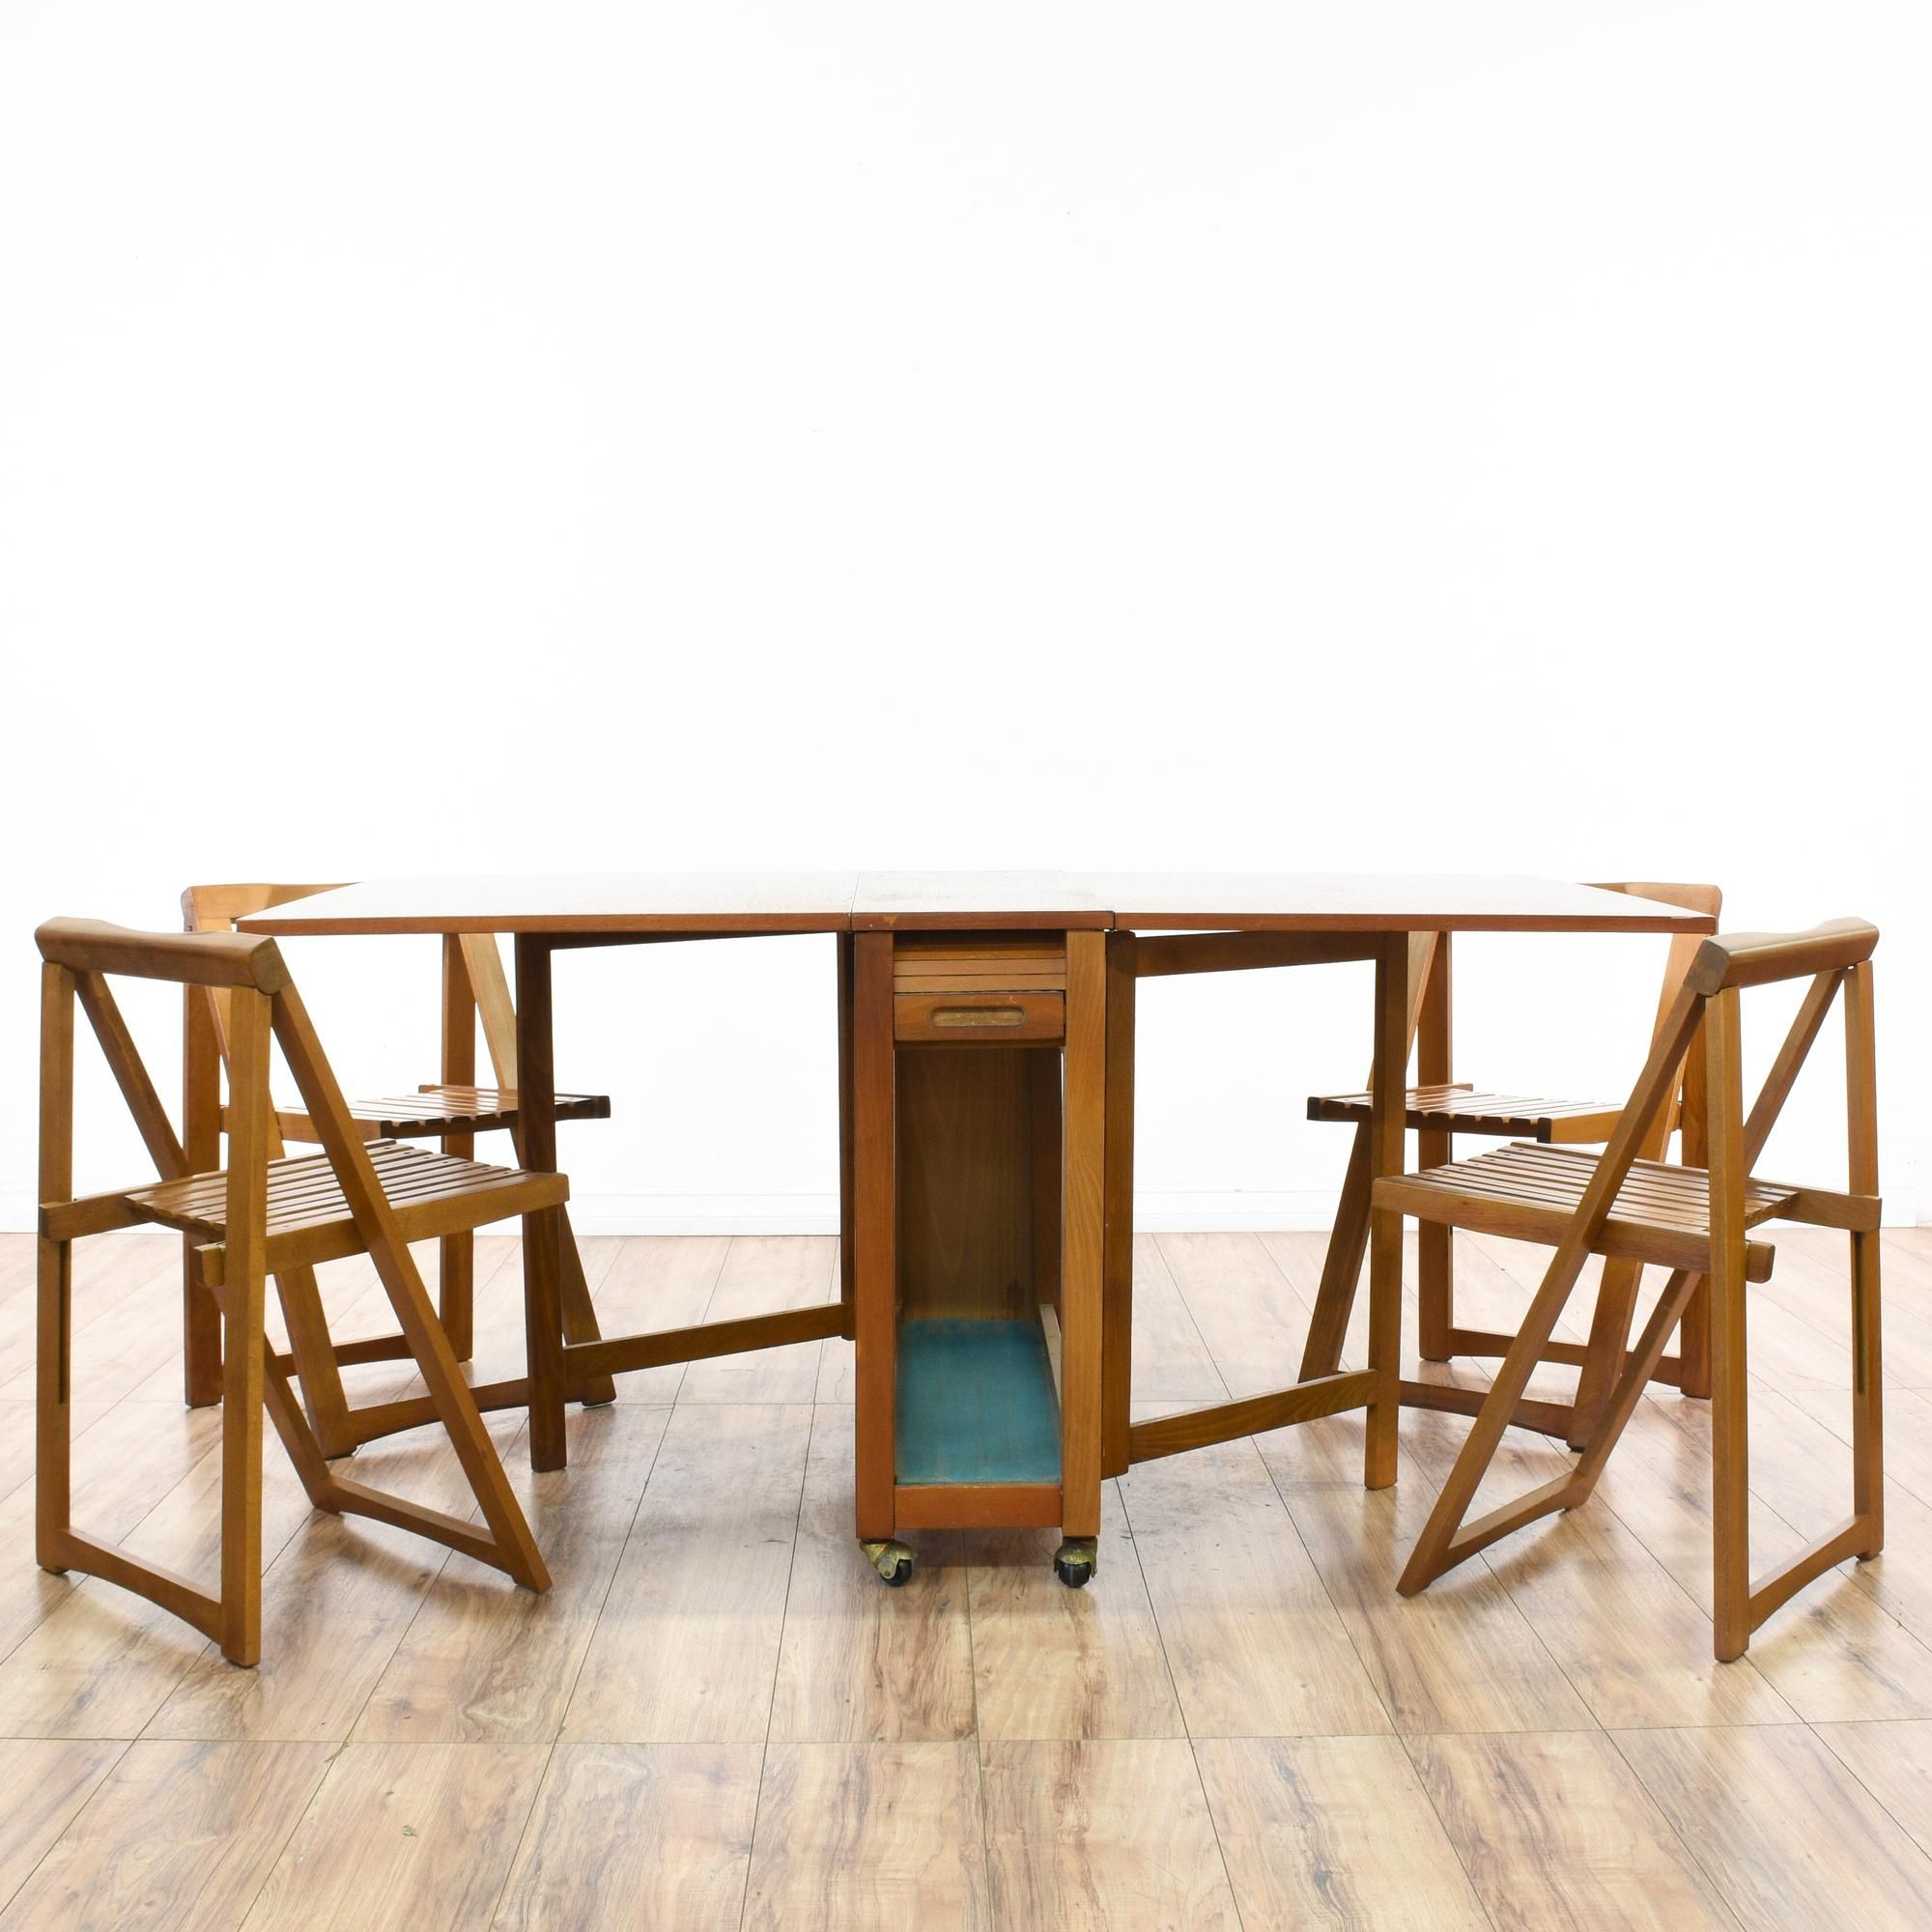 Drop Leaf Hideaway Dining Table 4 Folding Chairs Mid Century